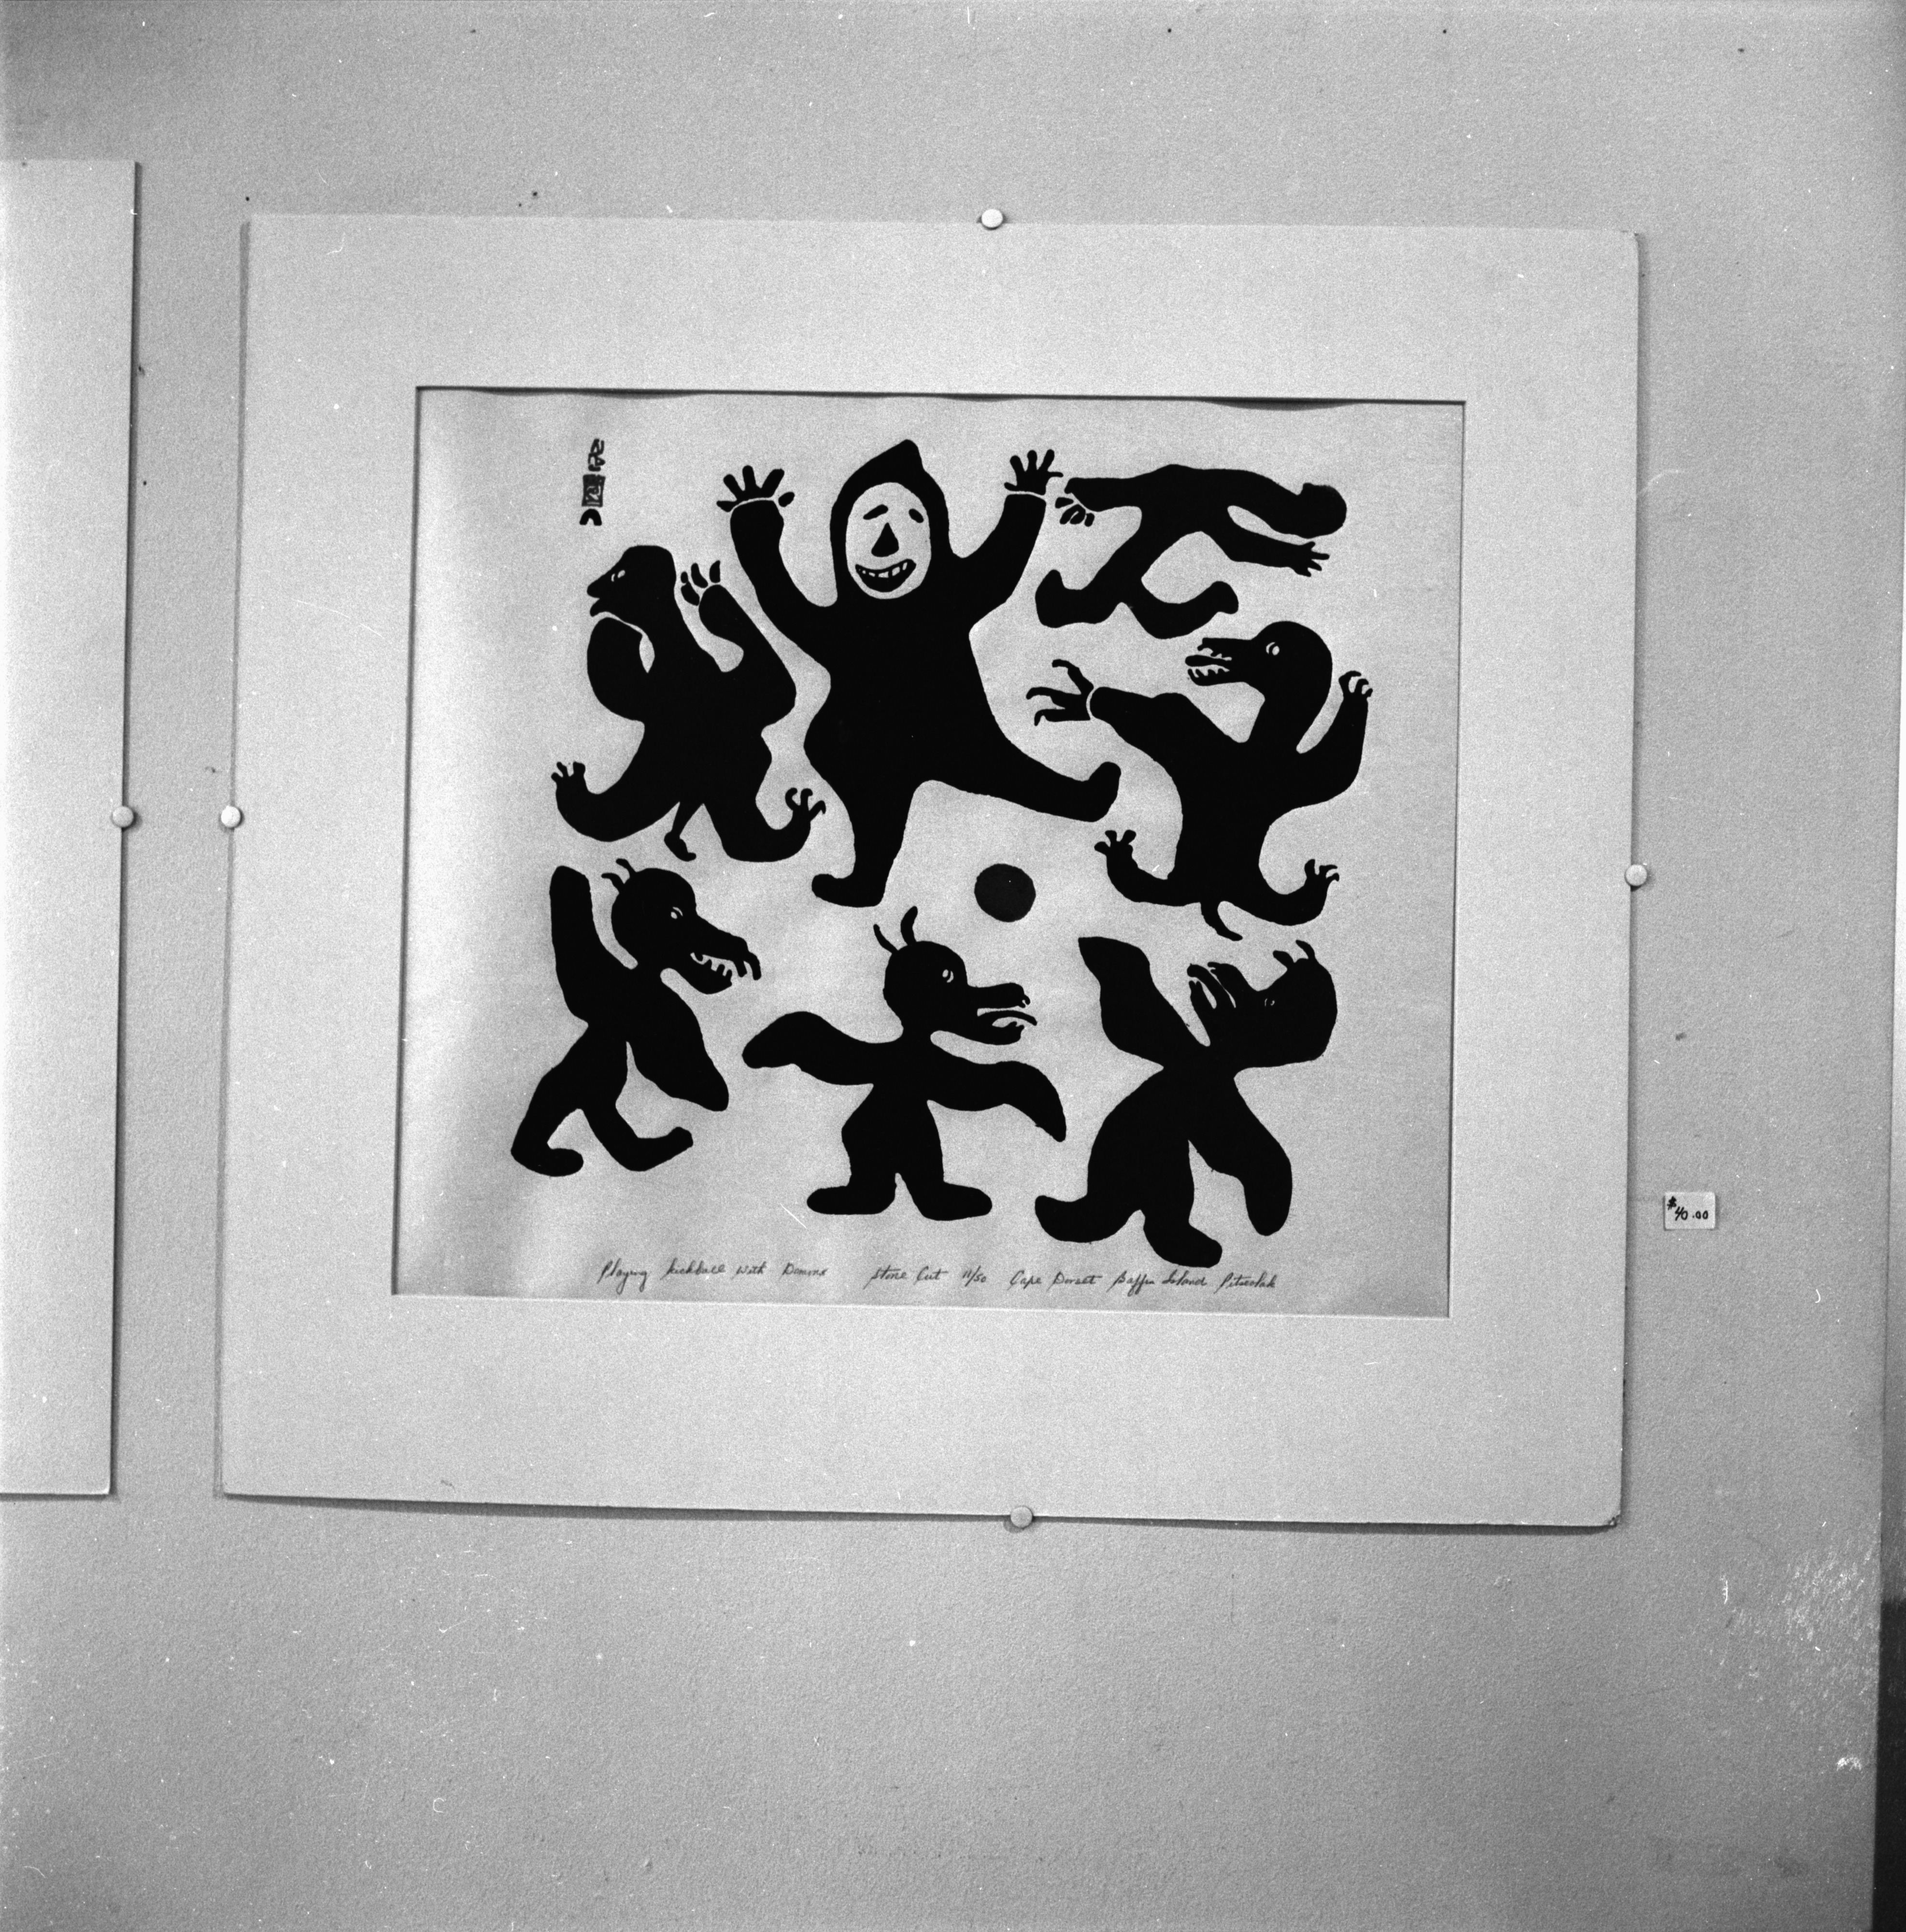 Photograph of Inuit Art Print by Pitseolak Ashoon, March 1967 image